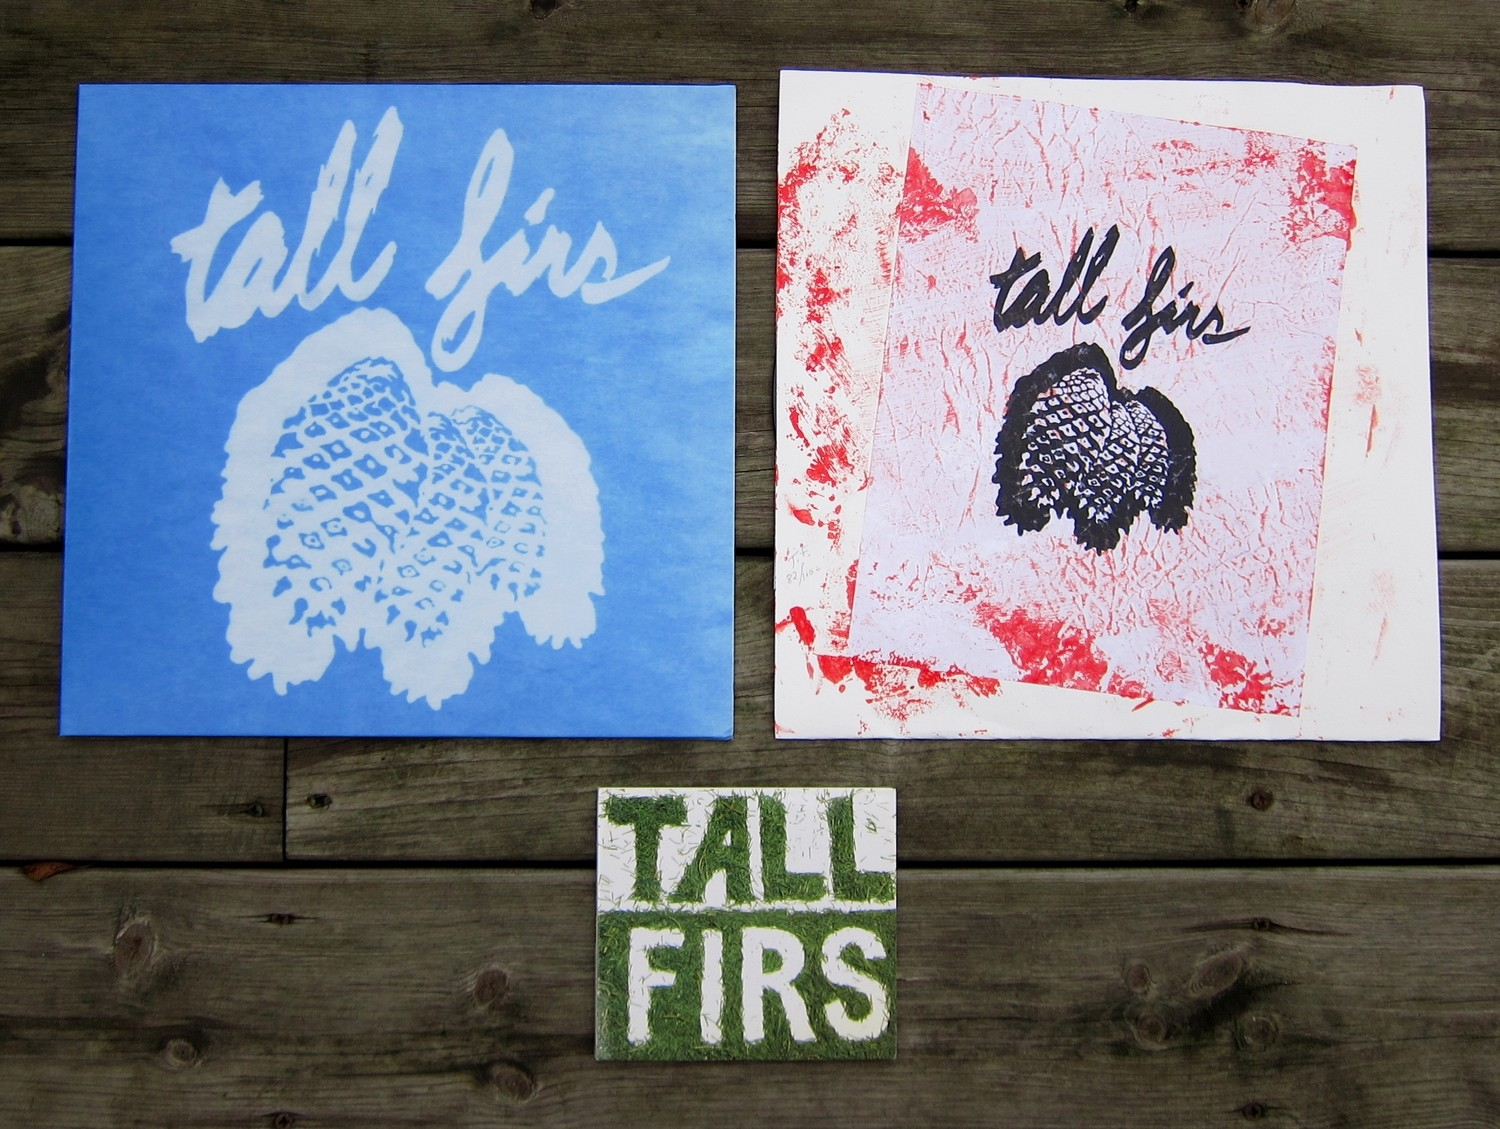 TALL FIRS 2x LP / 1x CD multi-buy offer!